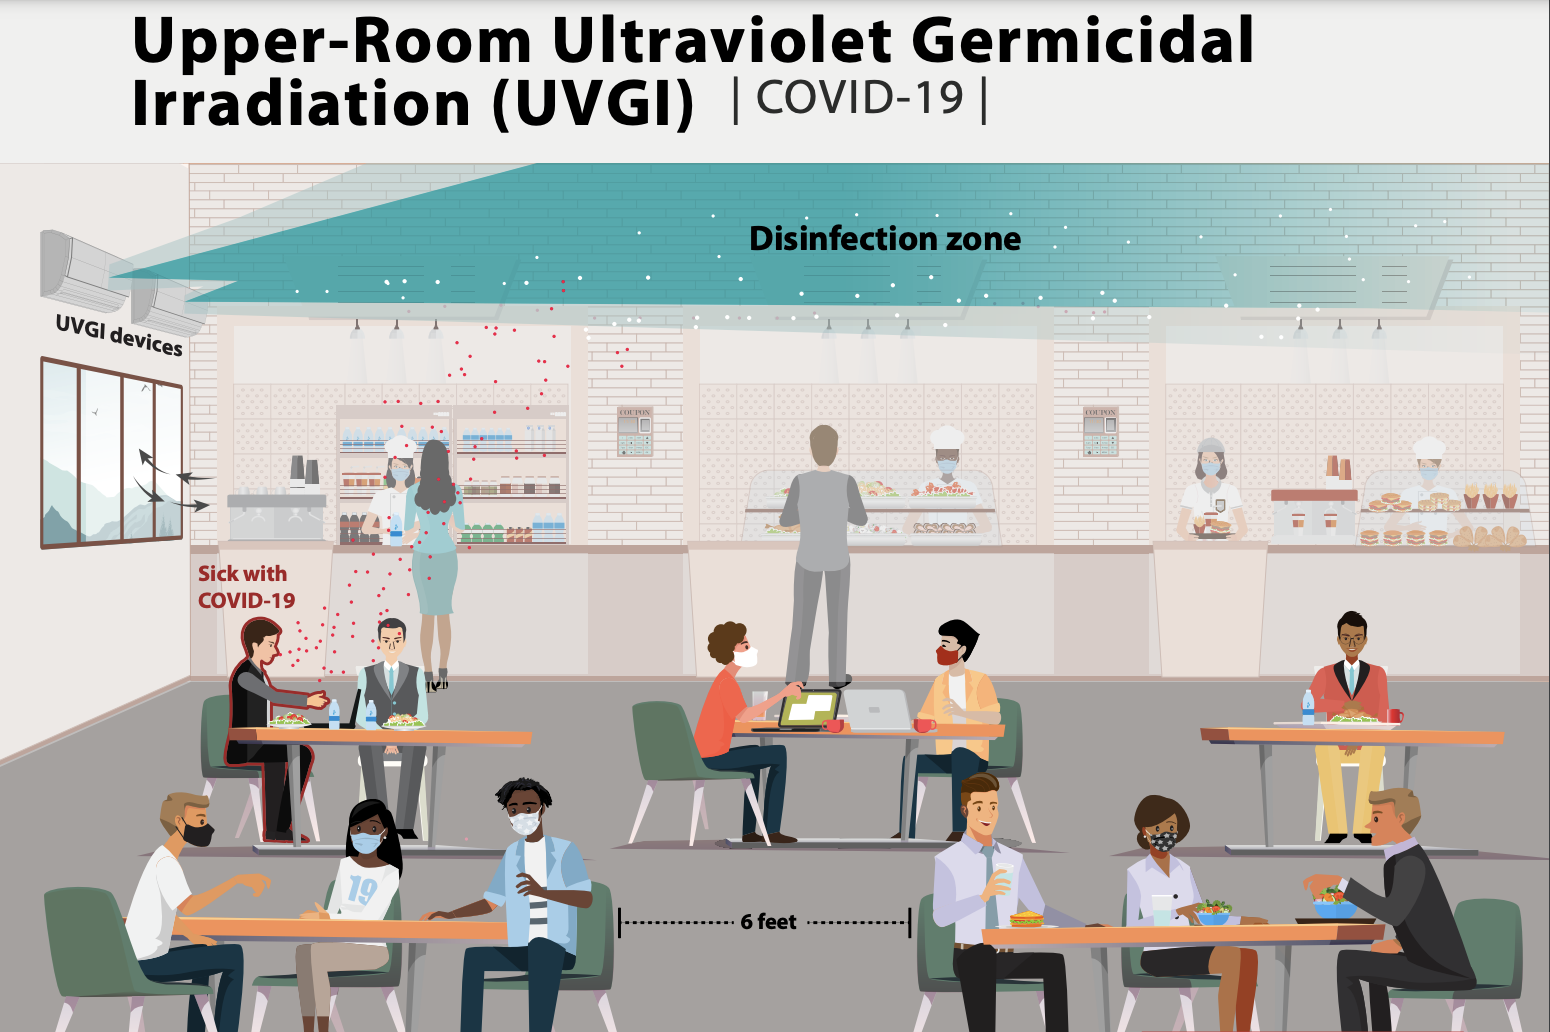 UVGI Facts From the CDC